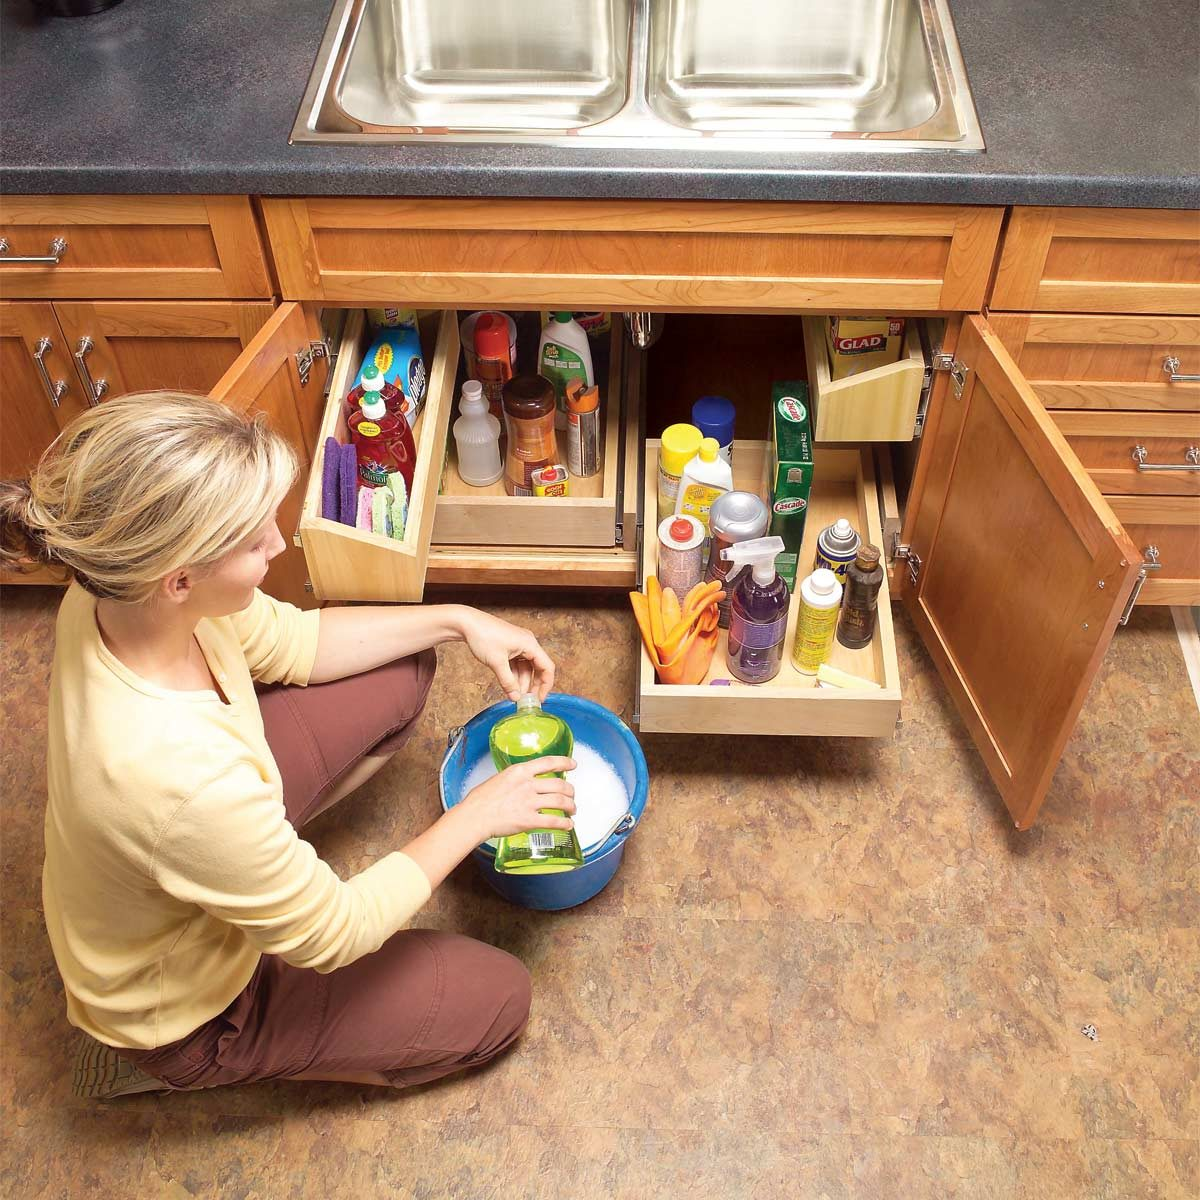 Kitchen Storage Solutions Diy: Kitchen Cabinet Storage Solutions: DIY Pull Out Shelves